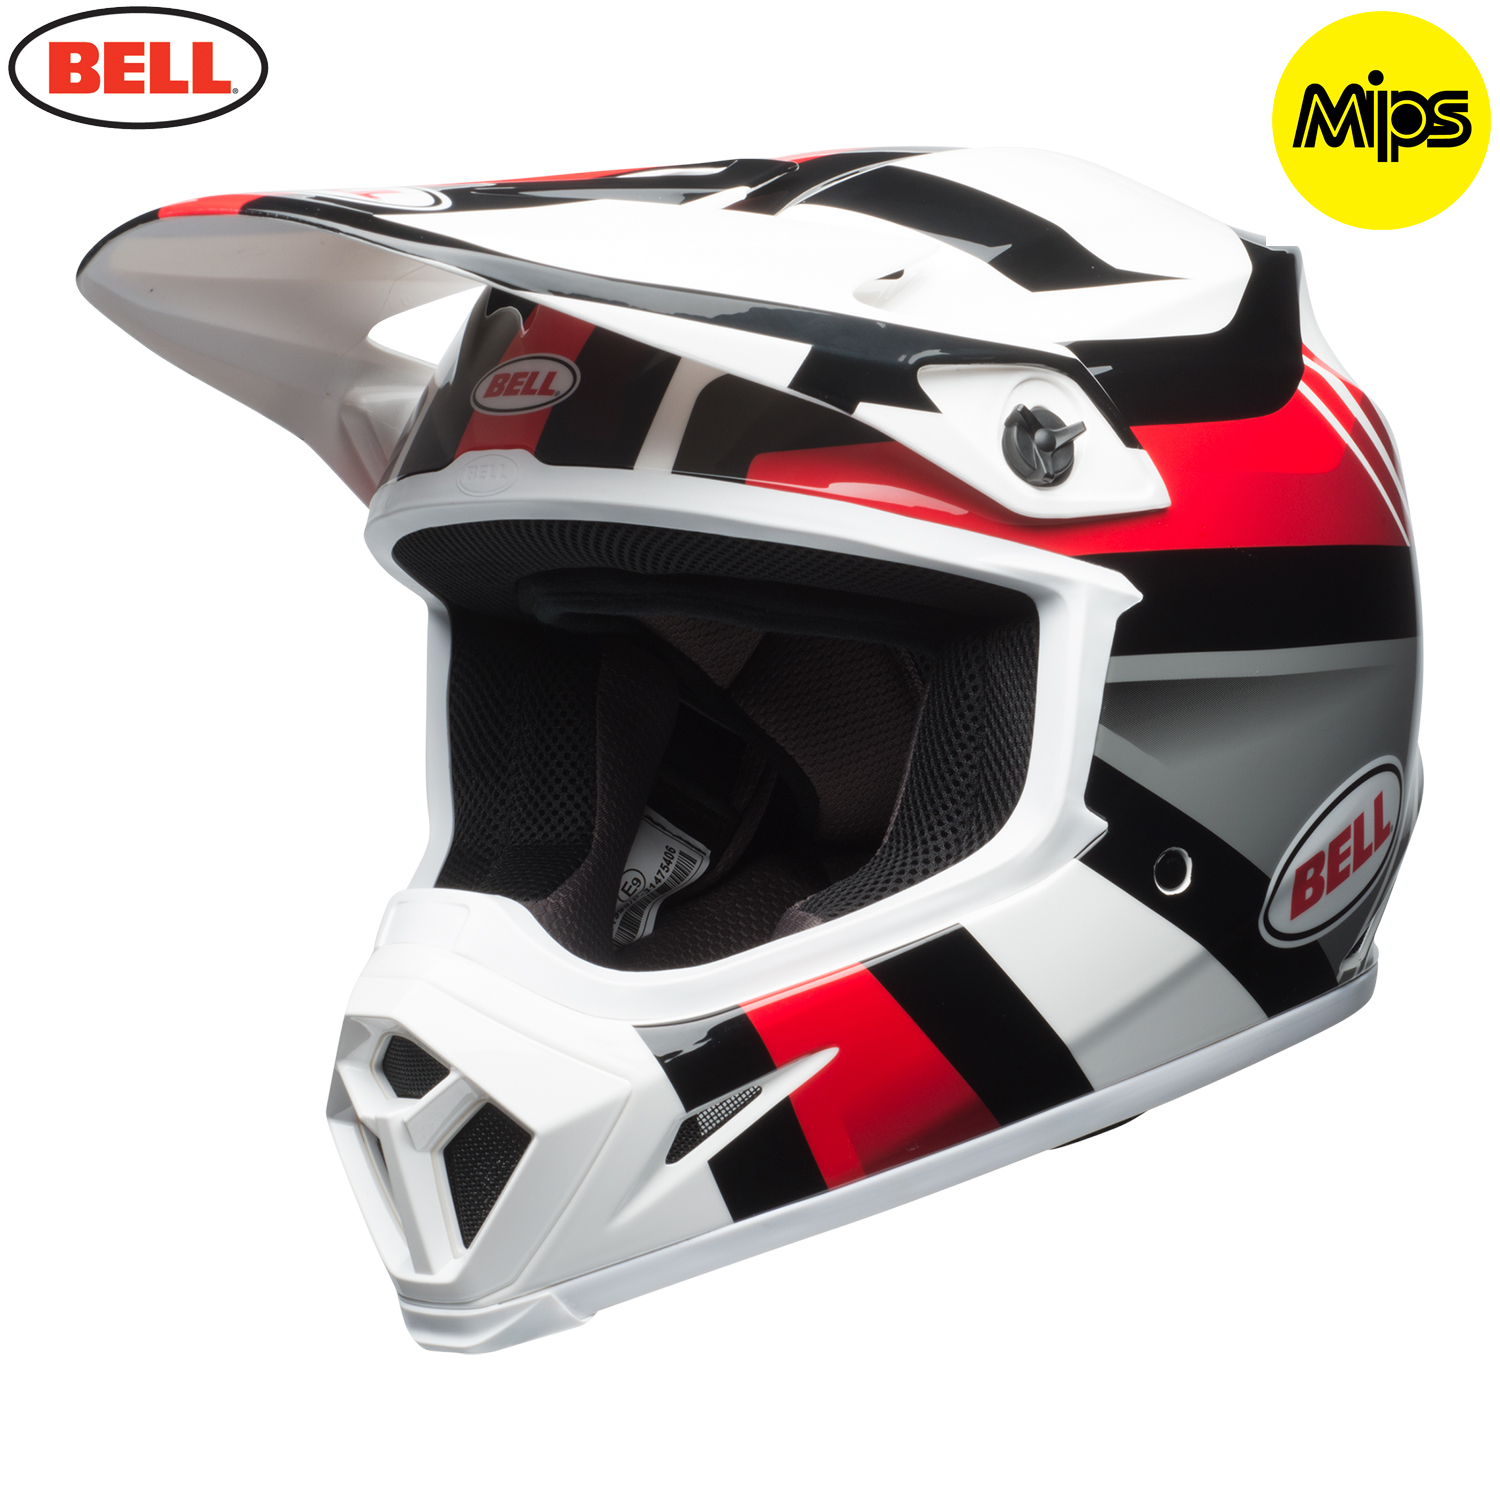 2018 bell mx 9 mips helmet marauder white black red. Black Bedroom Furniture Sets. Home Design Ideas